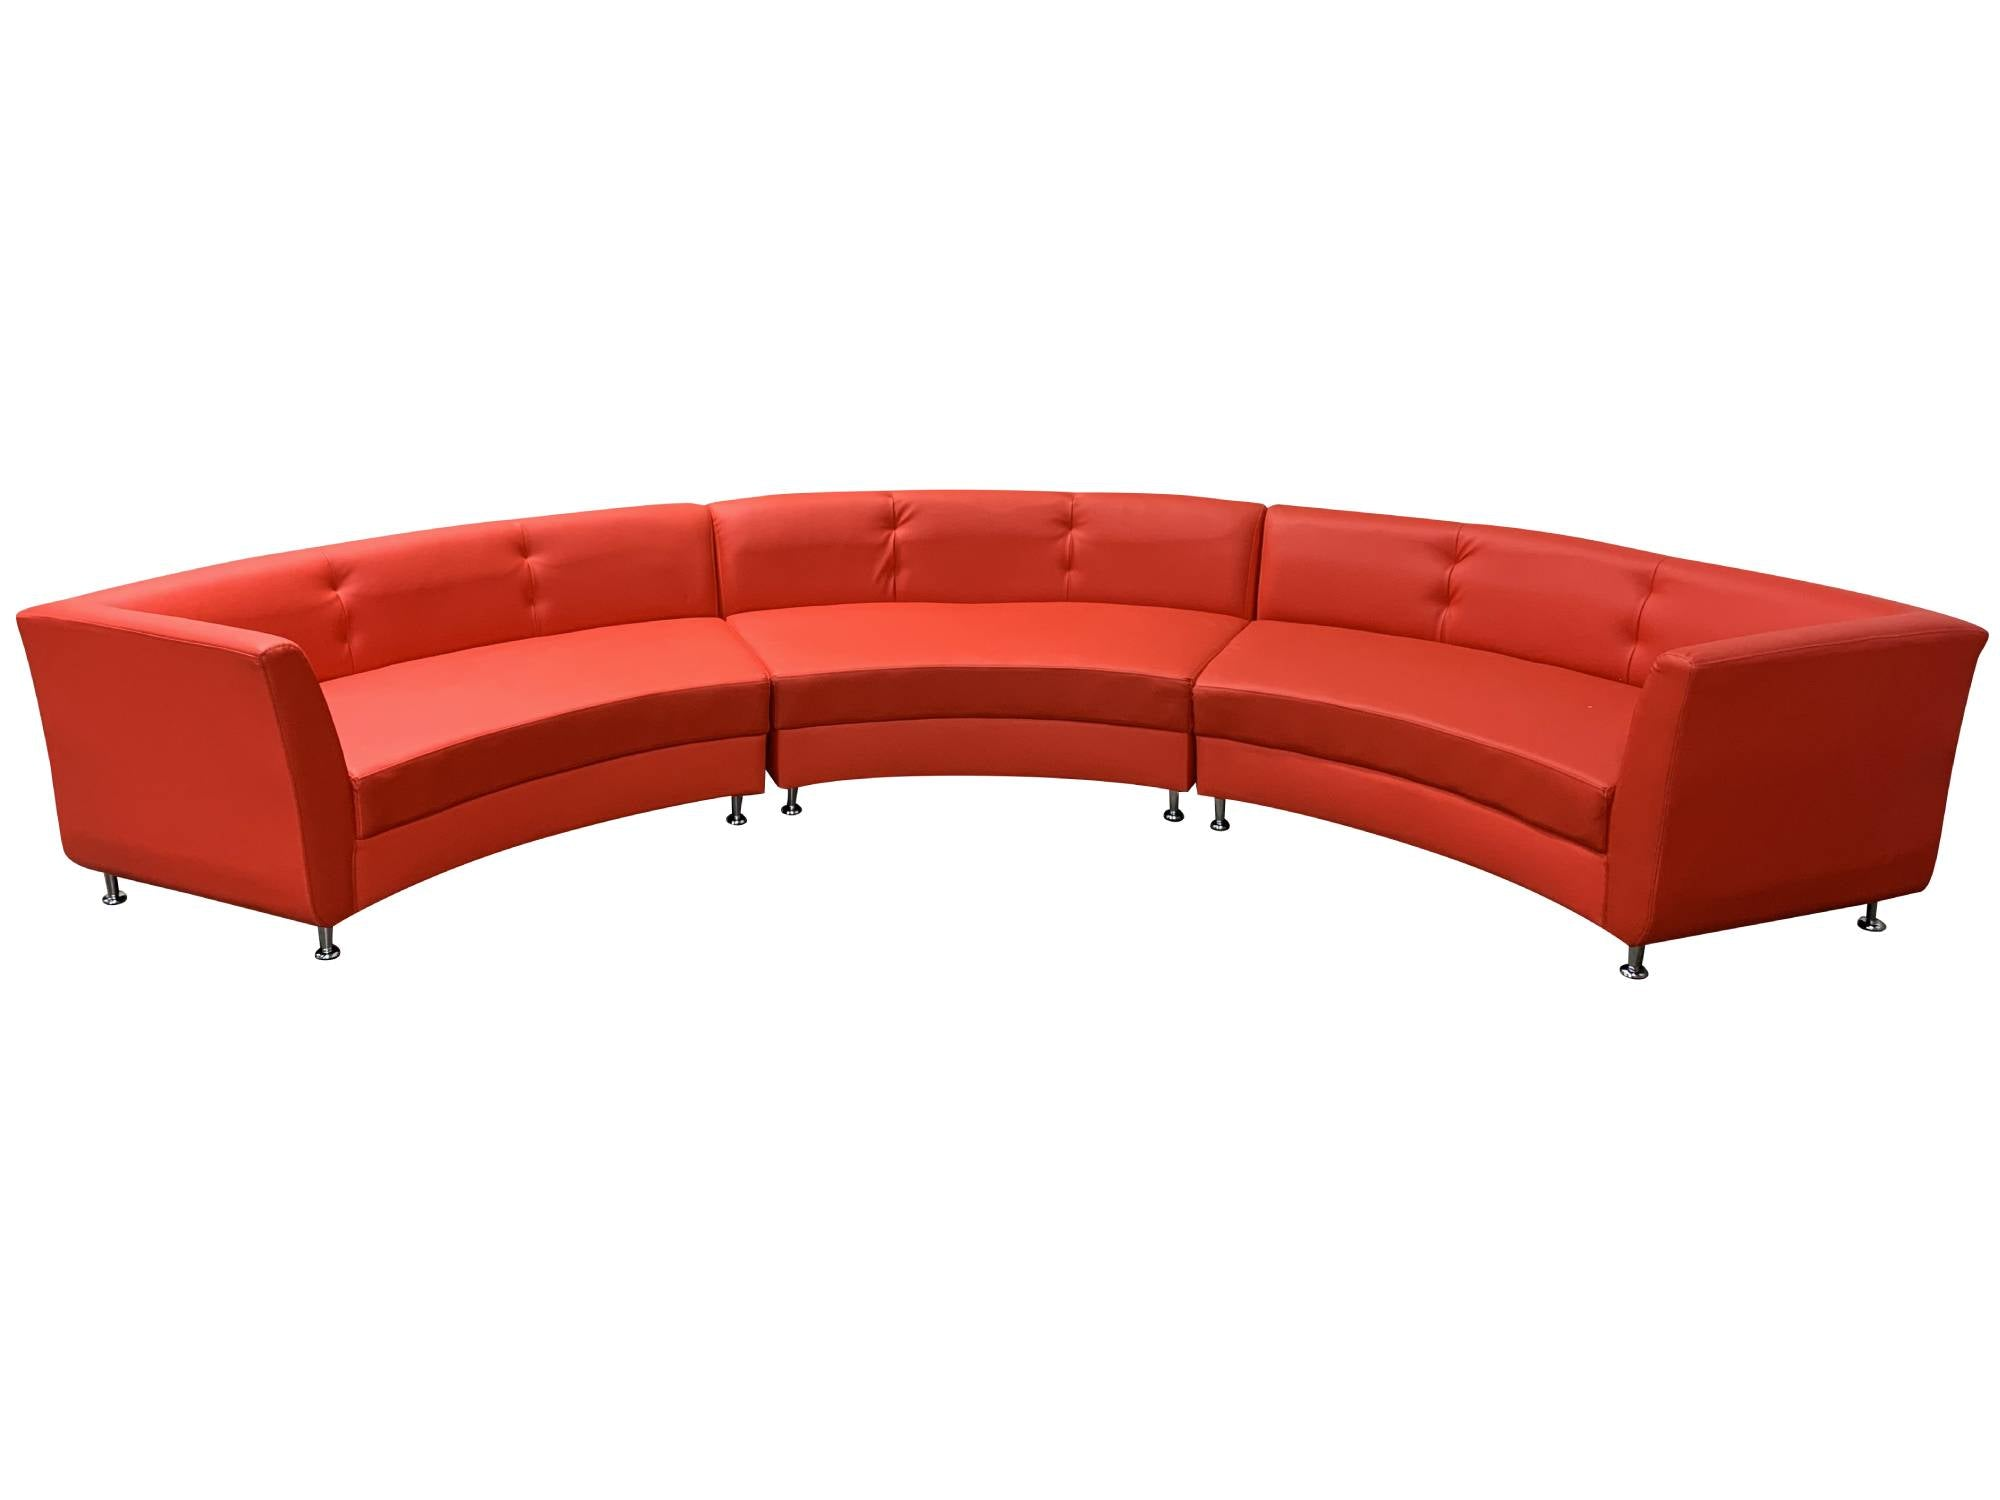 LUXURY 3PC CURVED SOFA - RED